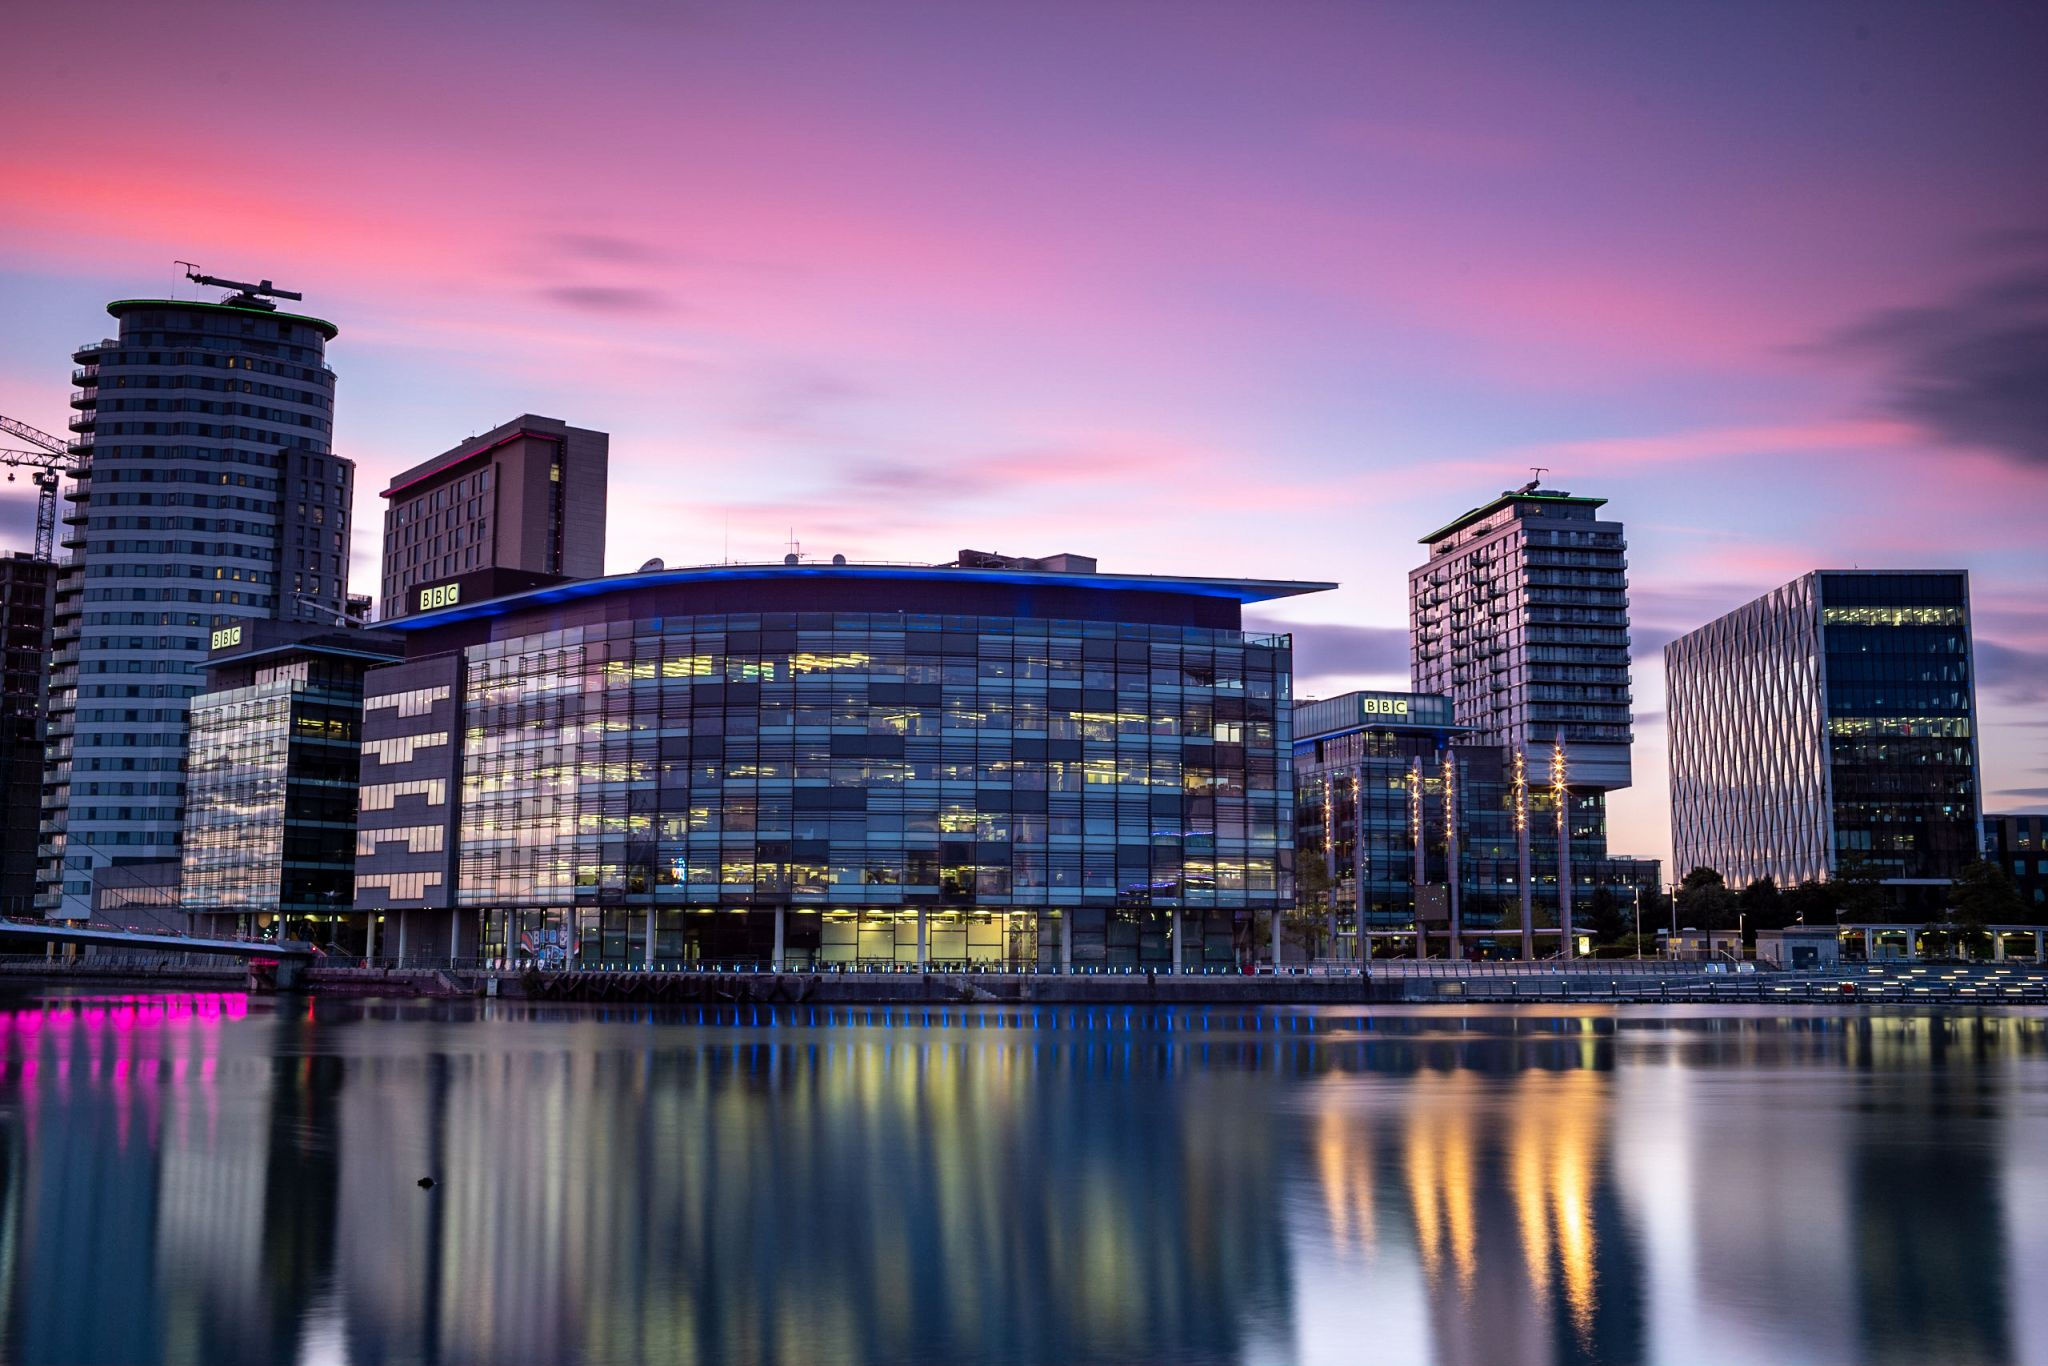 MediaCity UK (IWM View), United Kingdom